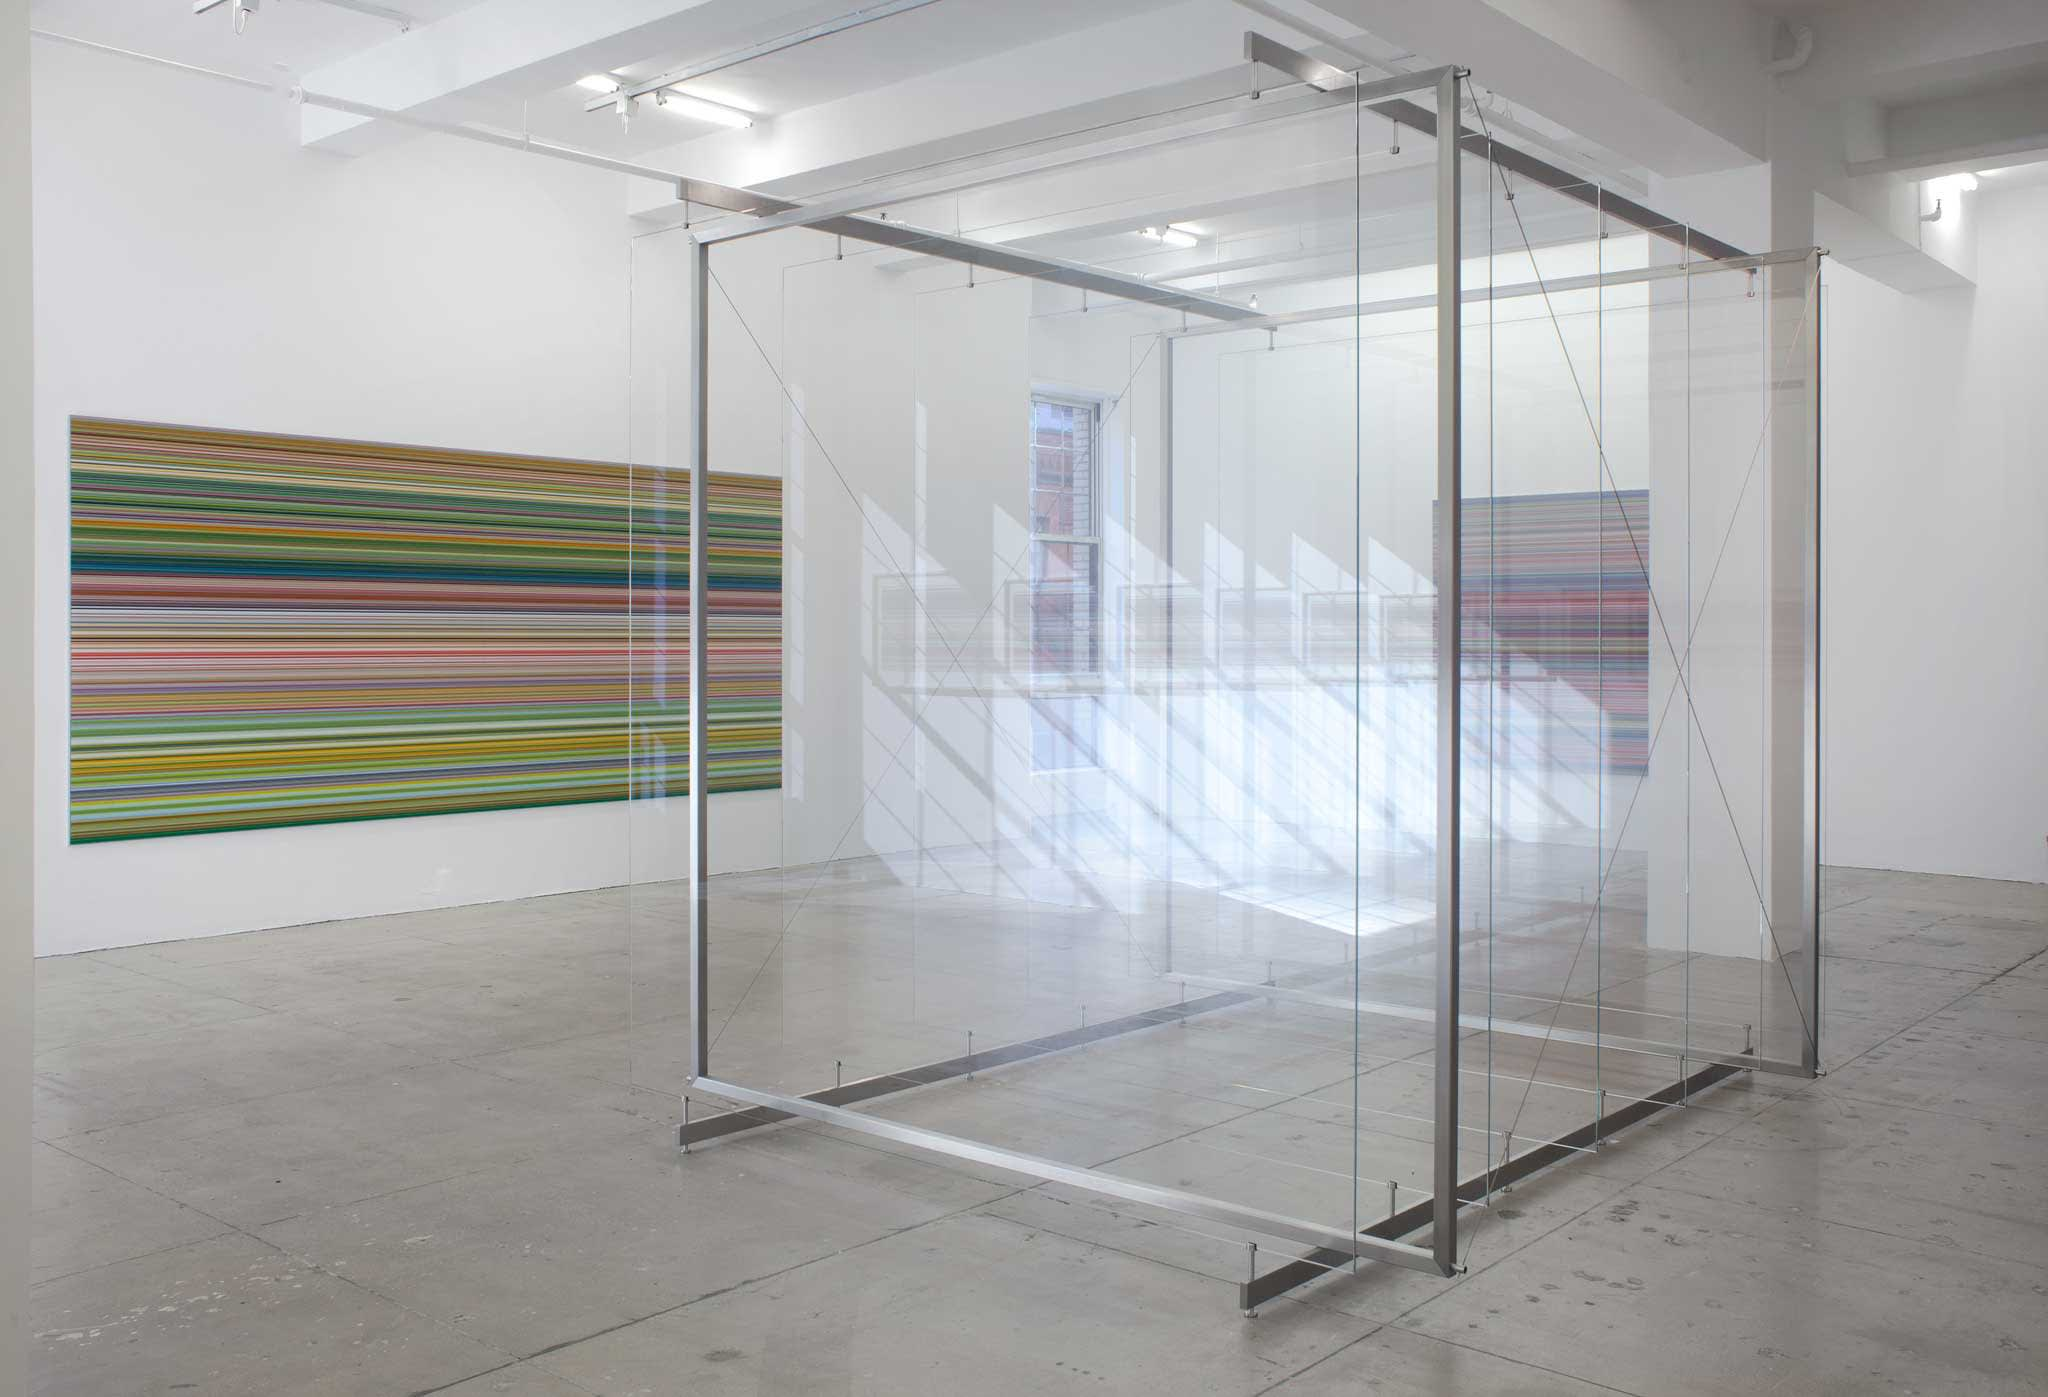 A floor-to-ceiling tall sculpture made of glass and steel in front of two paintings of red, yellow, green and black stripes.